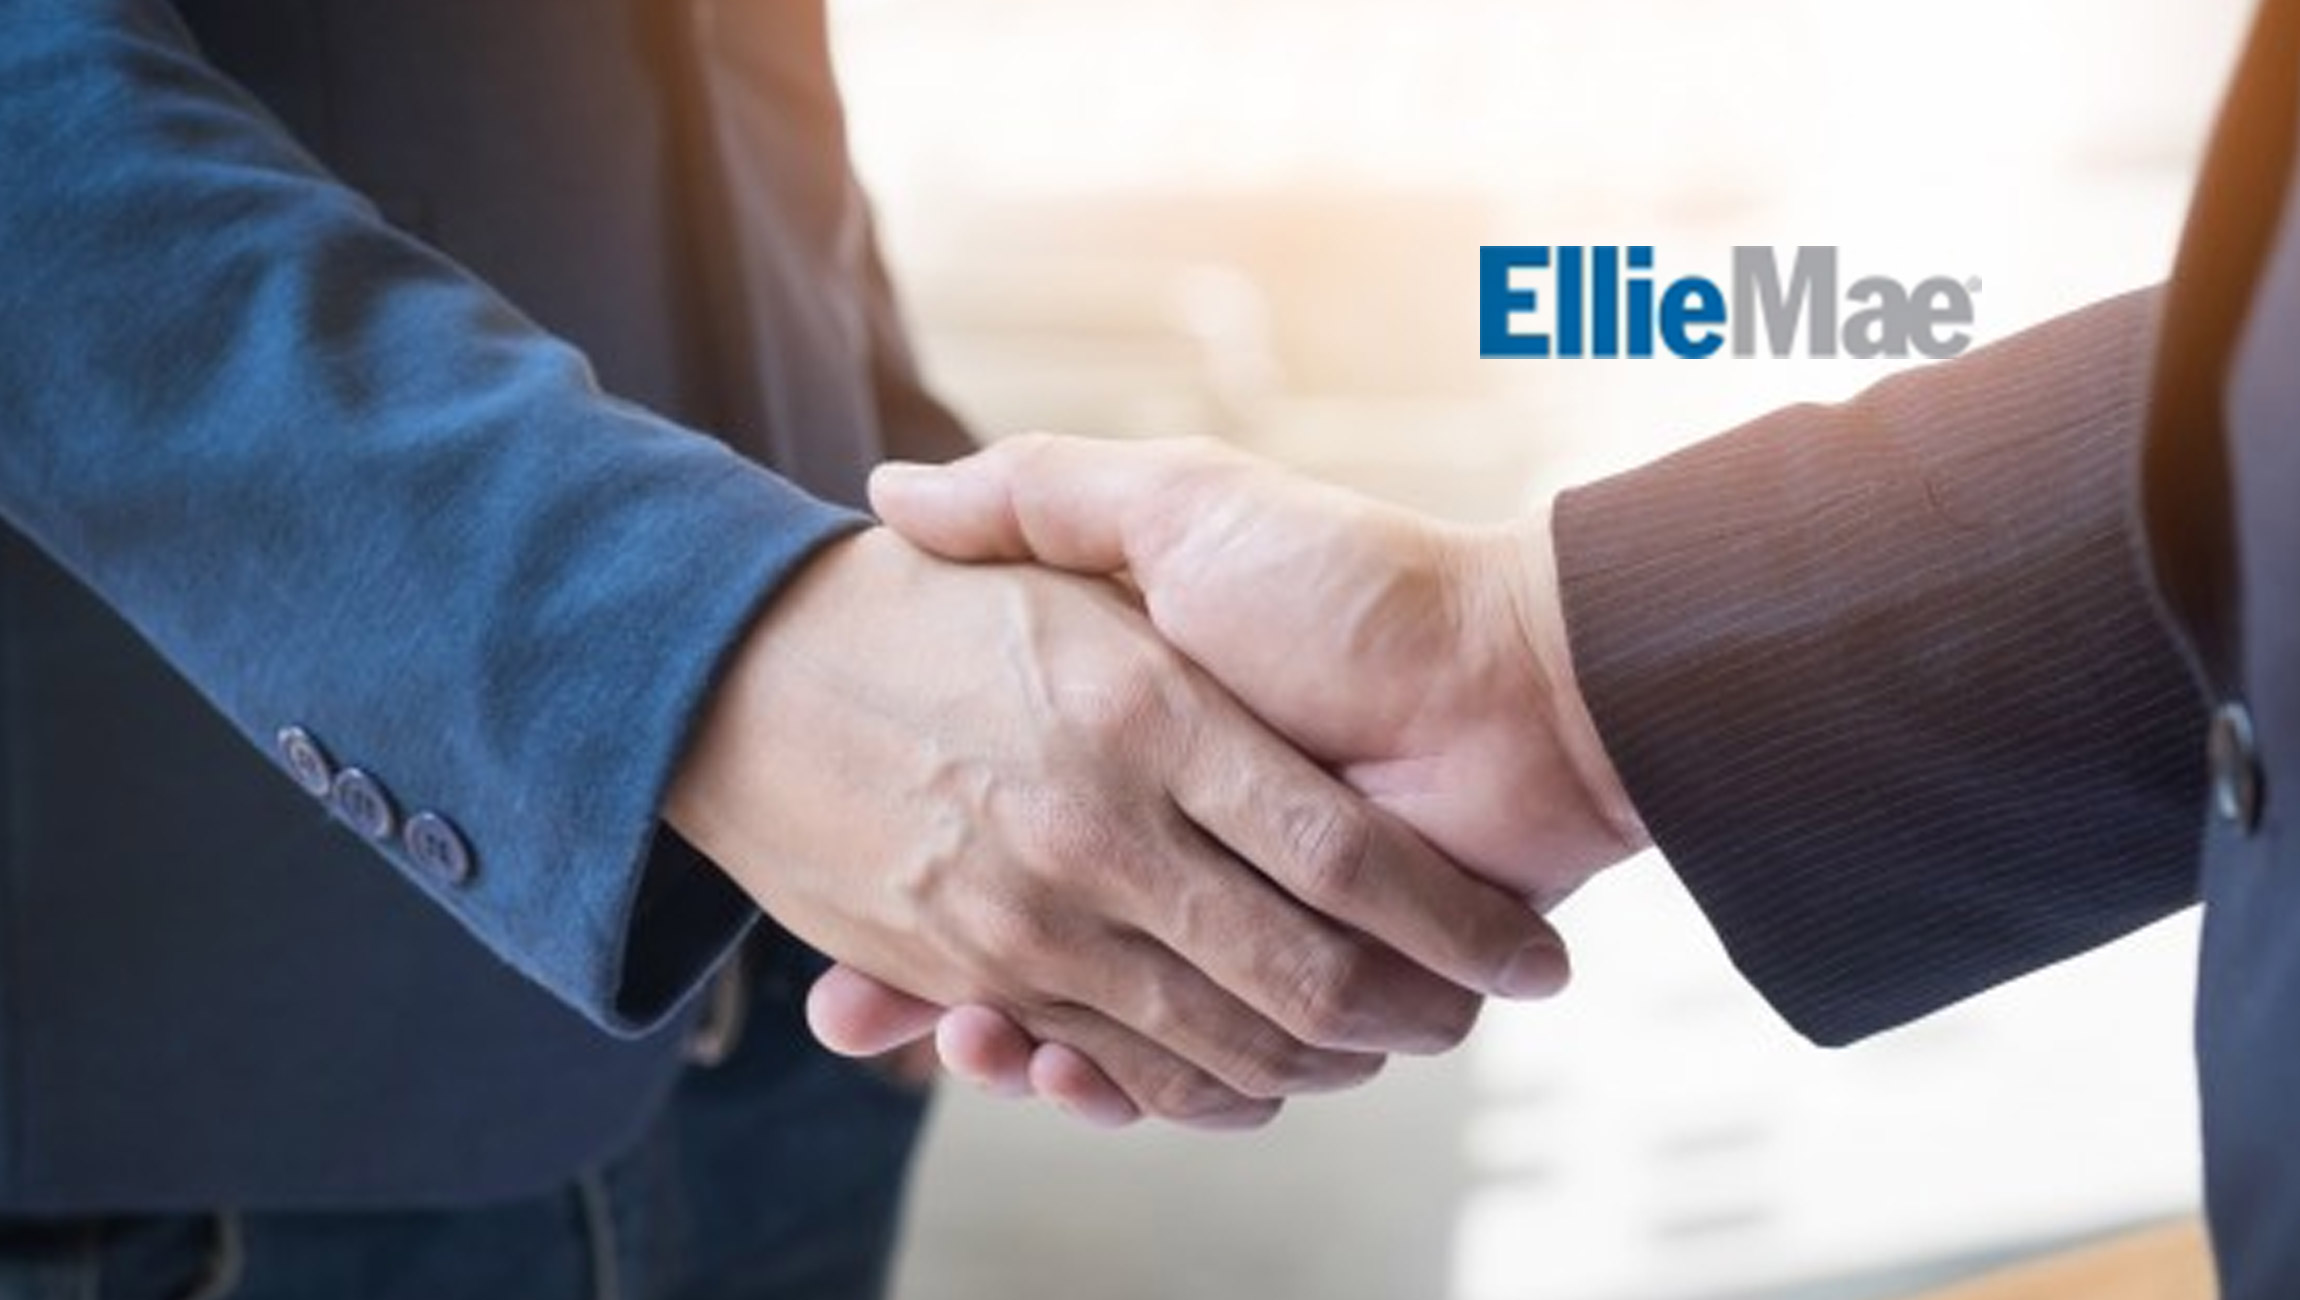 Ellie Mae Extends Deeper Integration Capabilities to CRM Vendors as Part of the Ellie Mae Integrated Partner Program